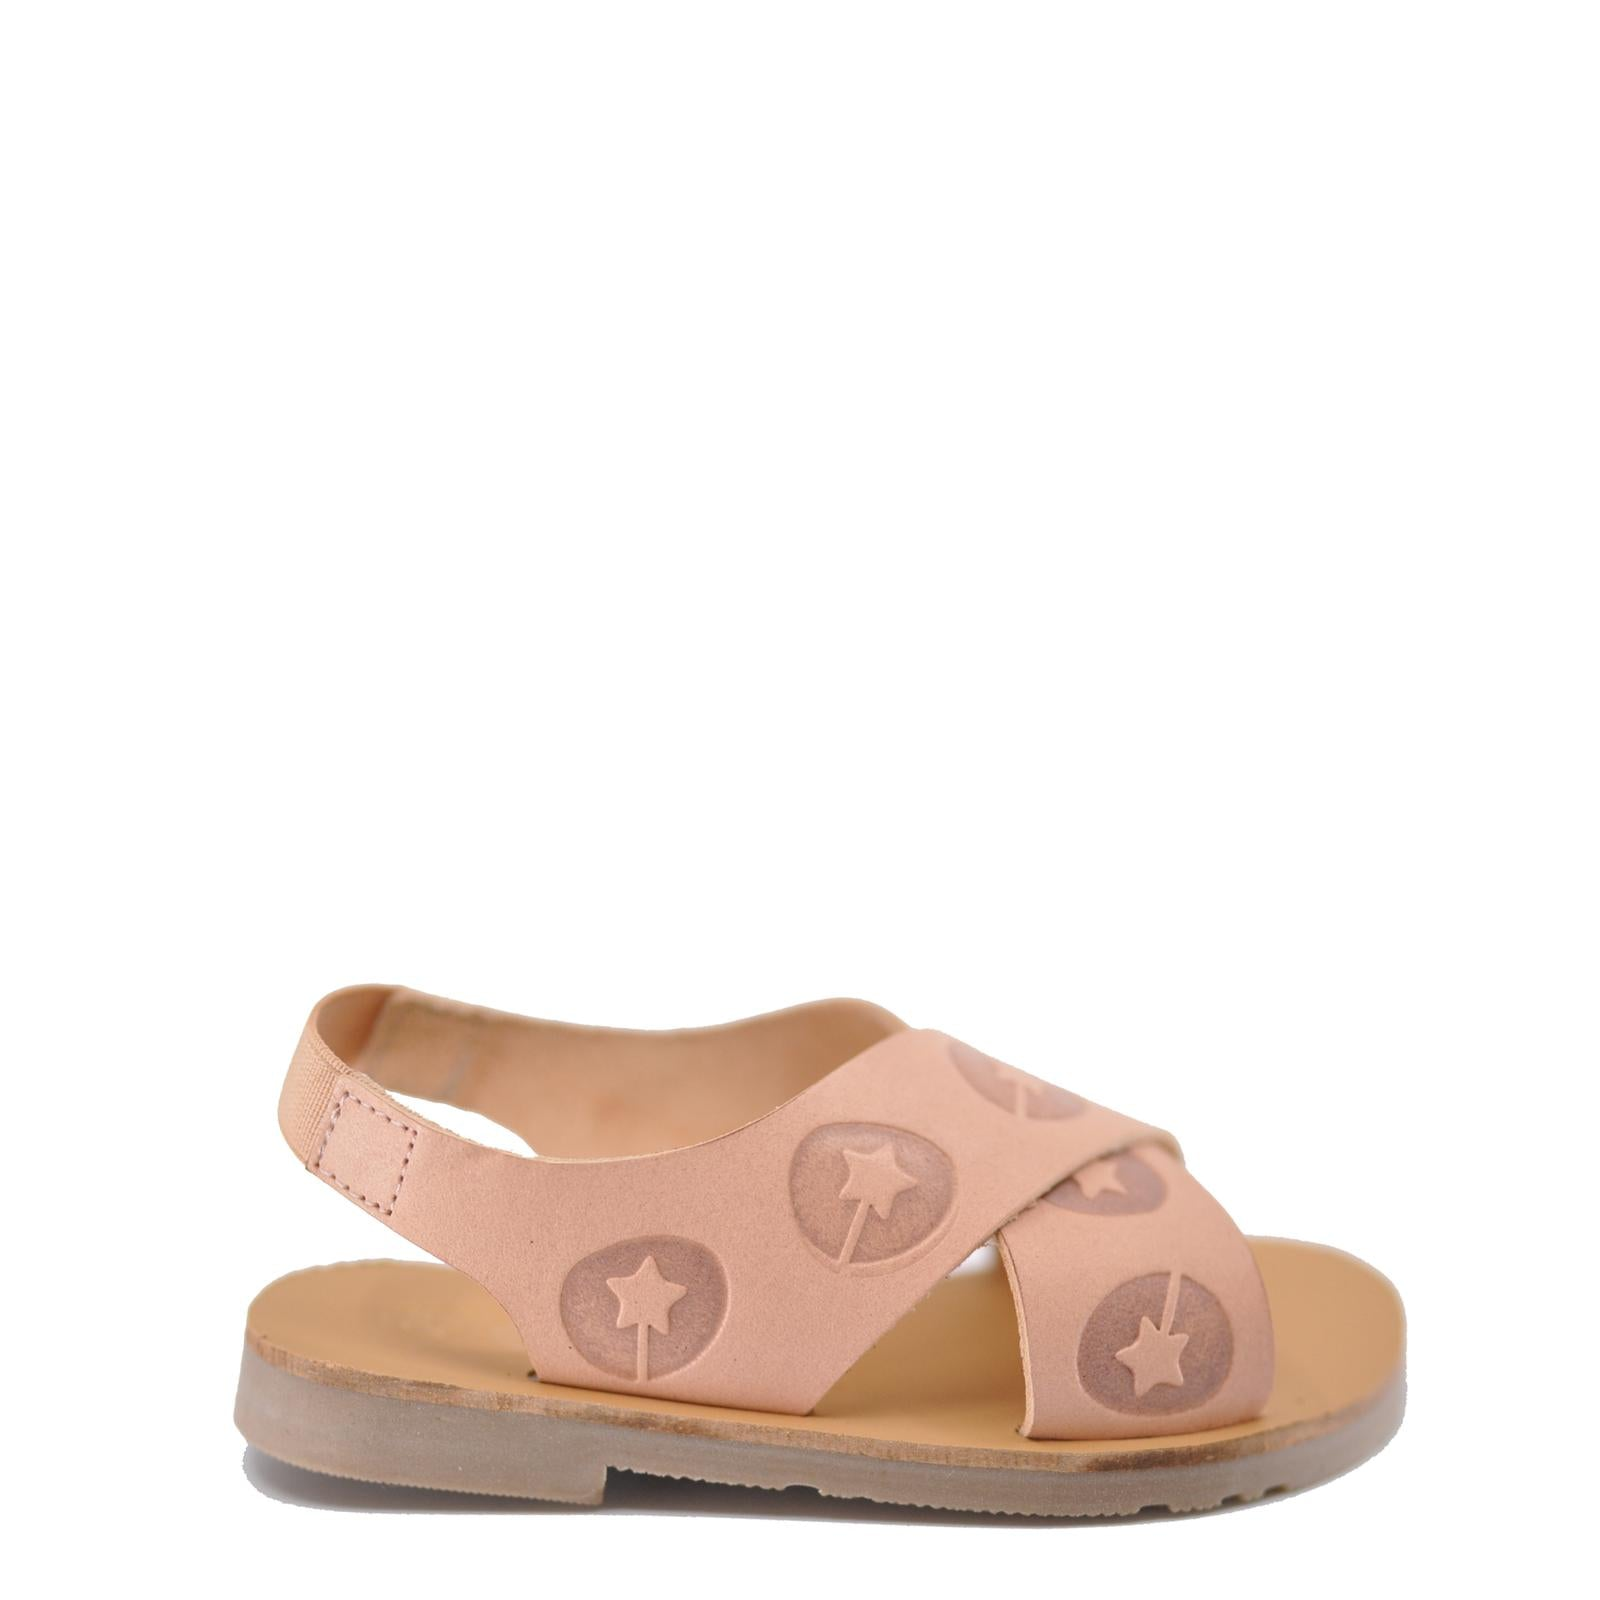 LMDI Logo Criss Cross Sandal-Tassel Children Shoes